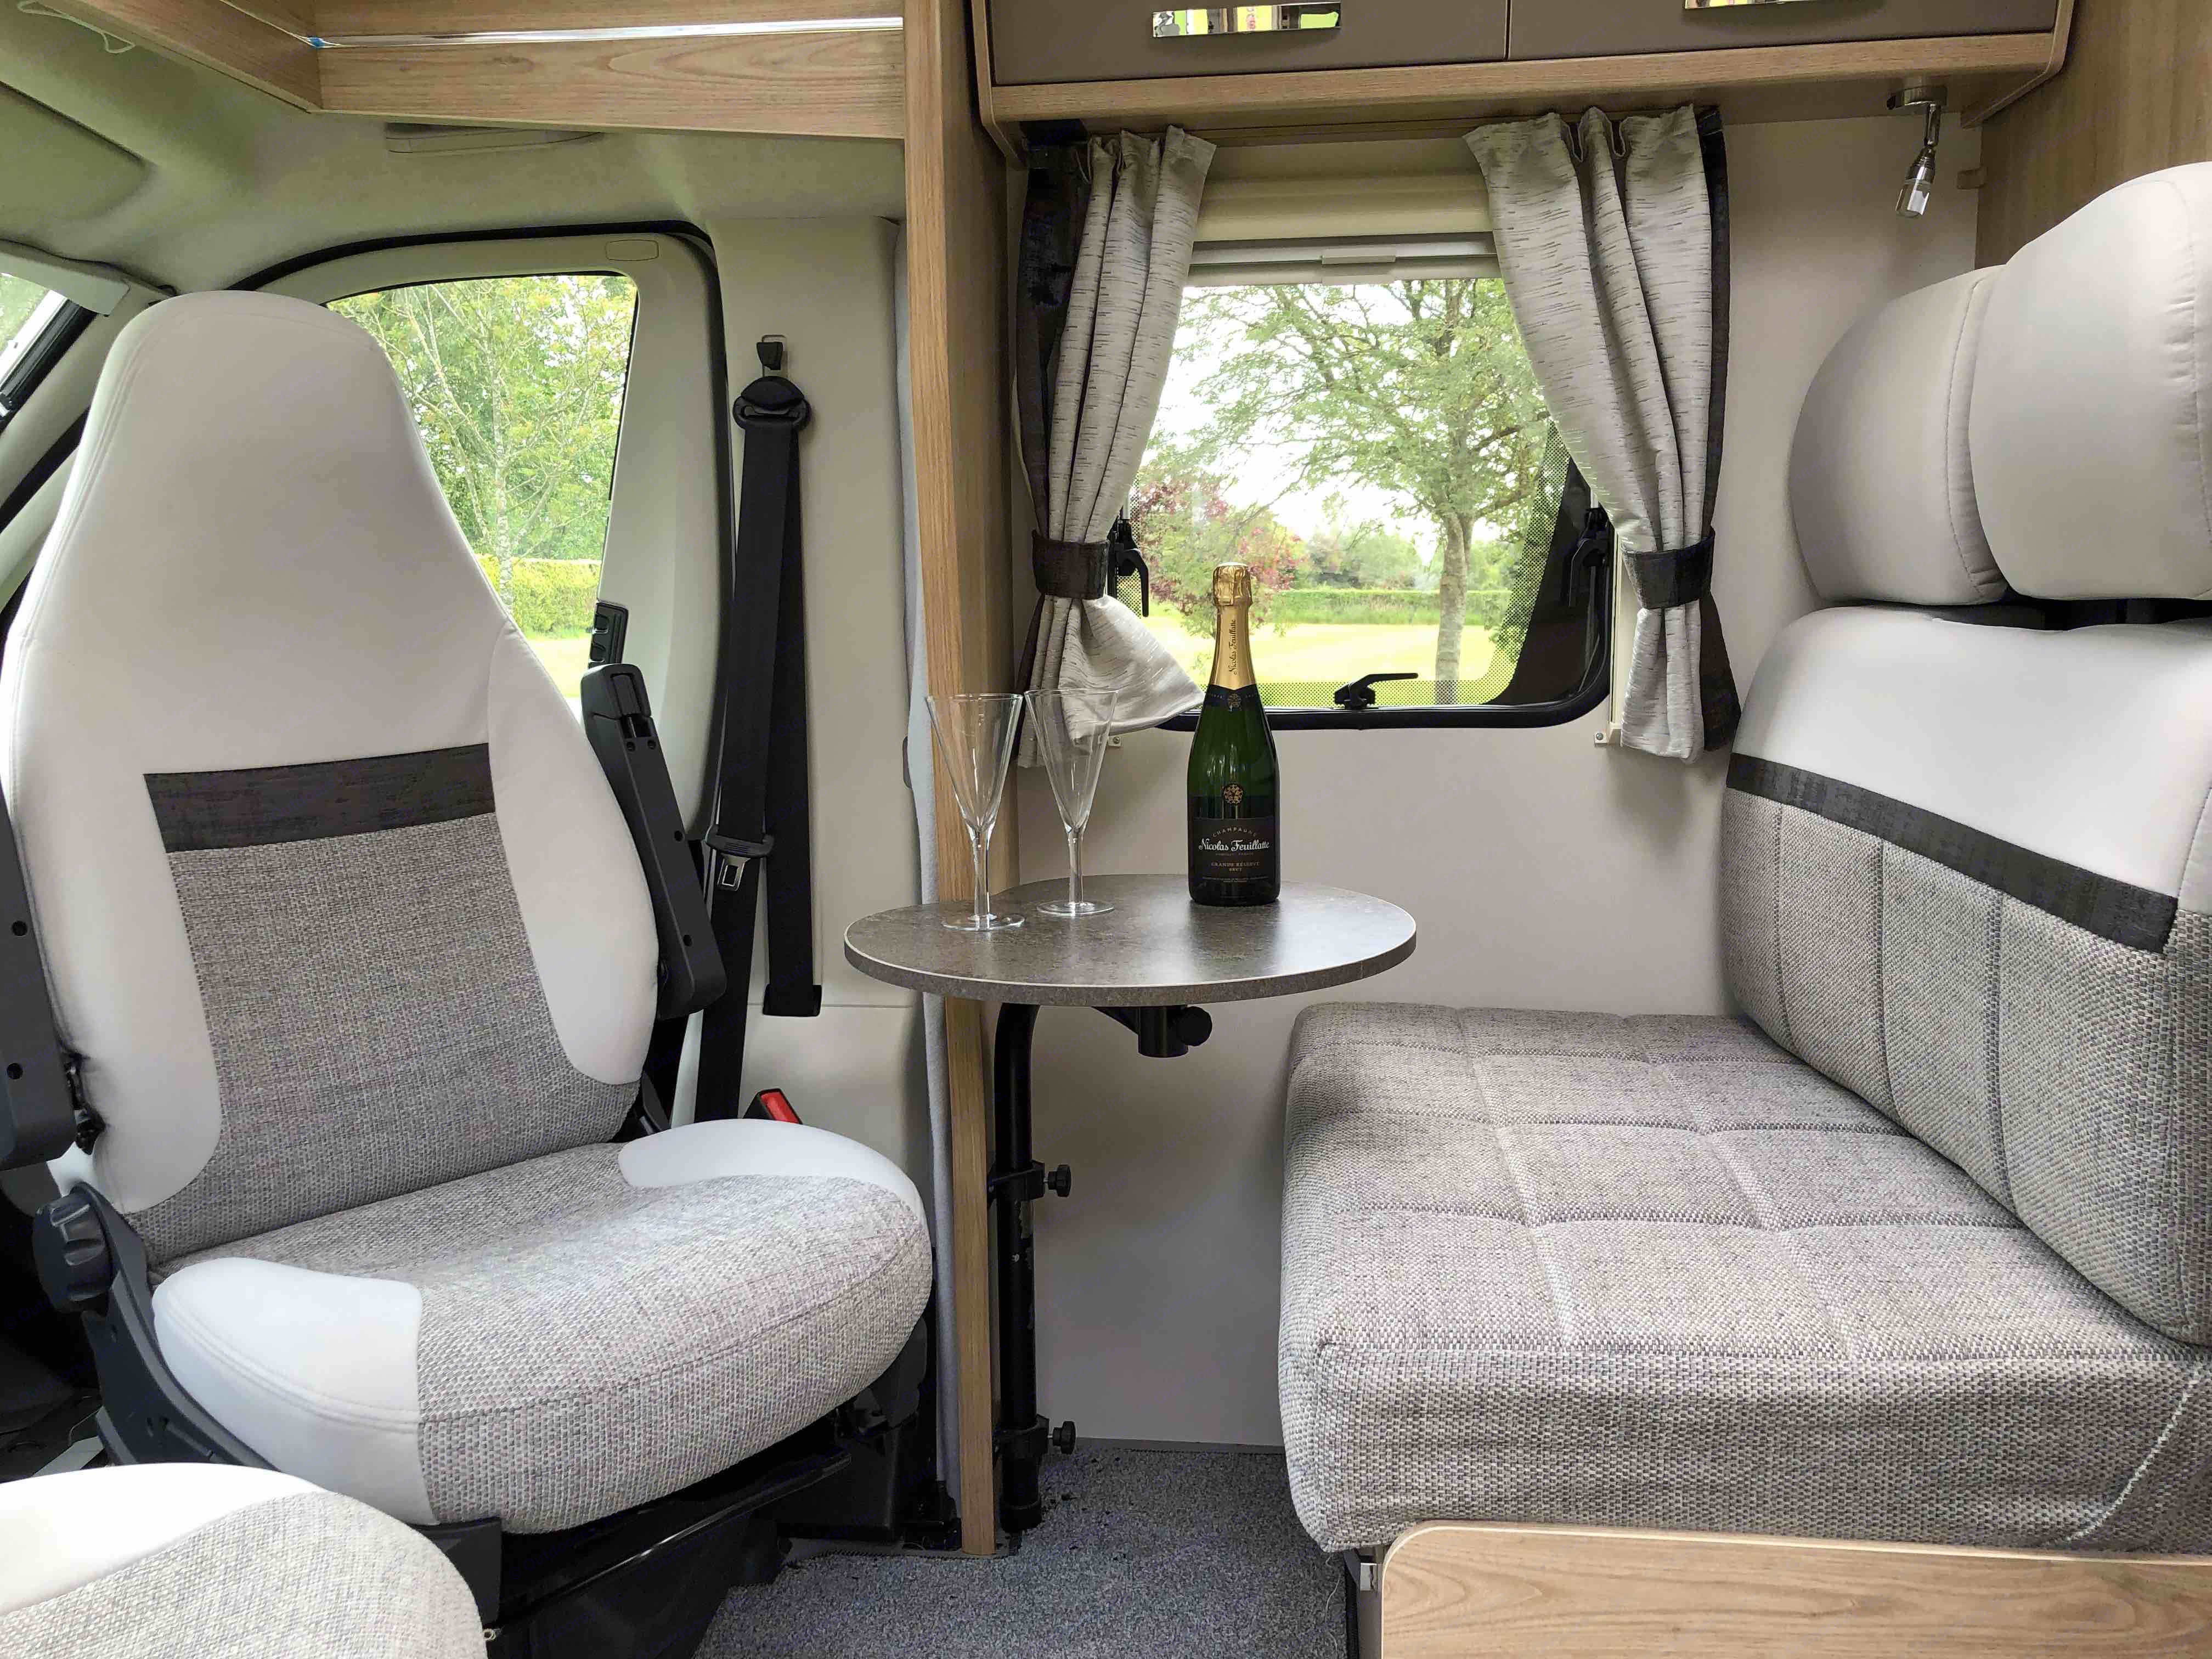 The front lounge is quickly converted to a lovely seating area which means if you like you can leave the beds set-up in the rear. Here also, if needed, you will find the third bed.. Elddis Accordo 135 2019